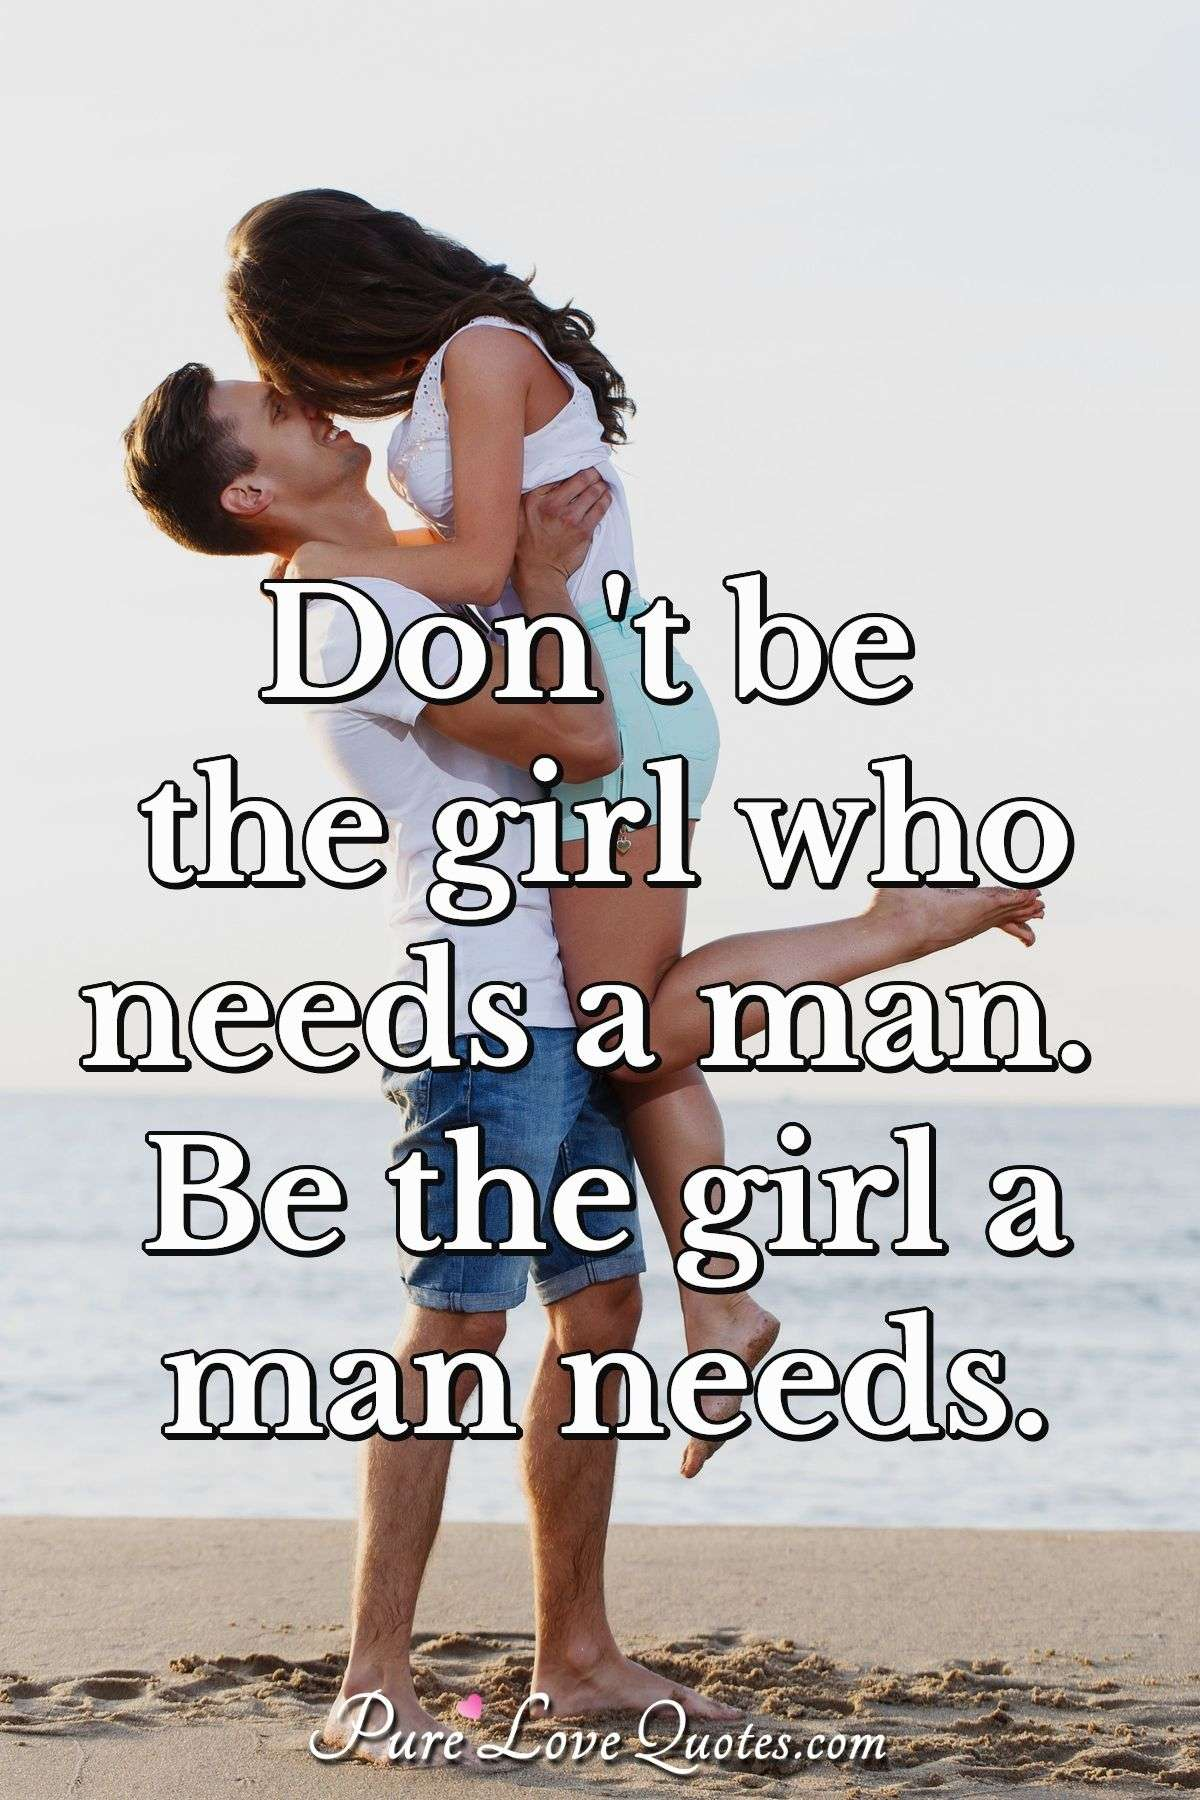 Don't be the girl who needs a man. Be the girl a man needs. - Anonymous